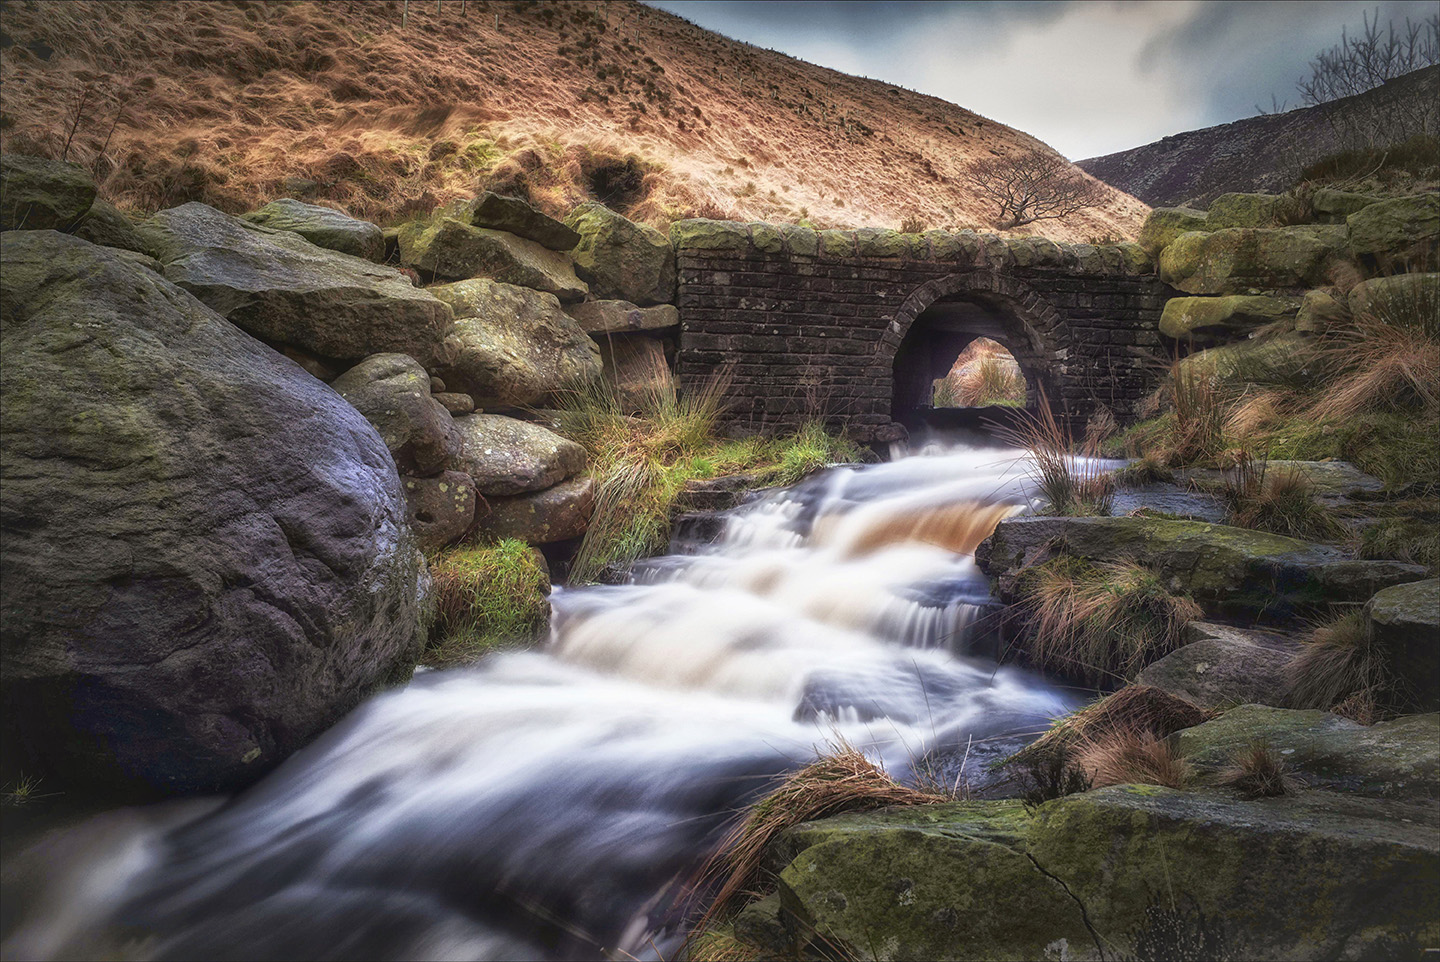 NEW! - We are now offering limited numbers of fine art landscape images of Saddleworth. Ideal as gifts for birthdays, Christmas, retirements, friends and family who have moved out of the area, corporate offices, boardrooms and receptions.Have a look now.....